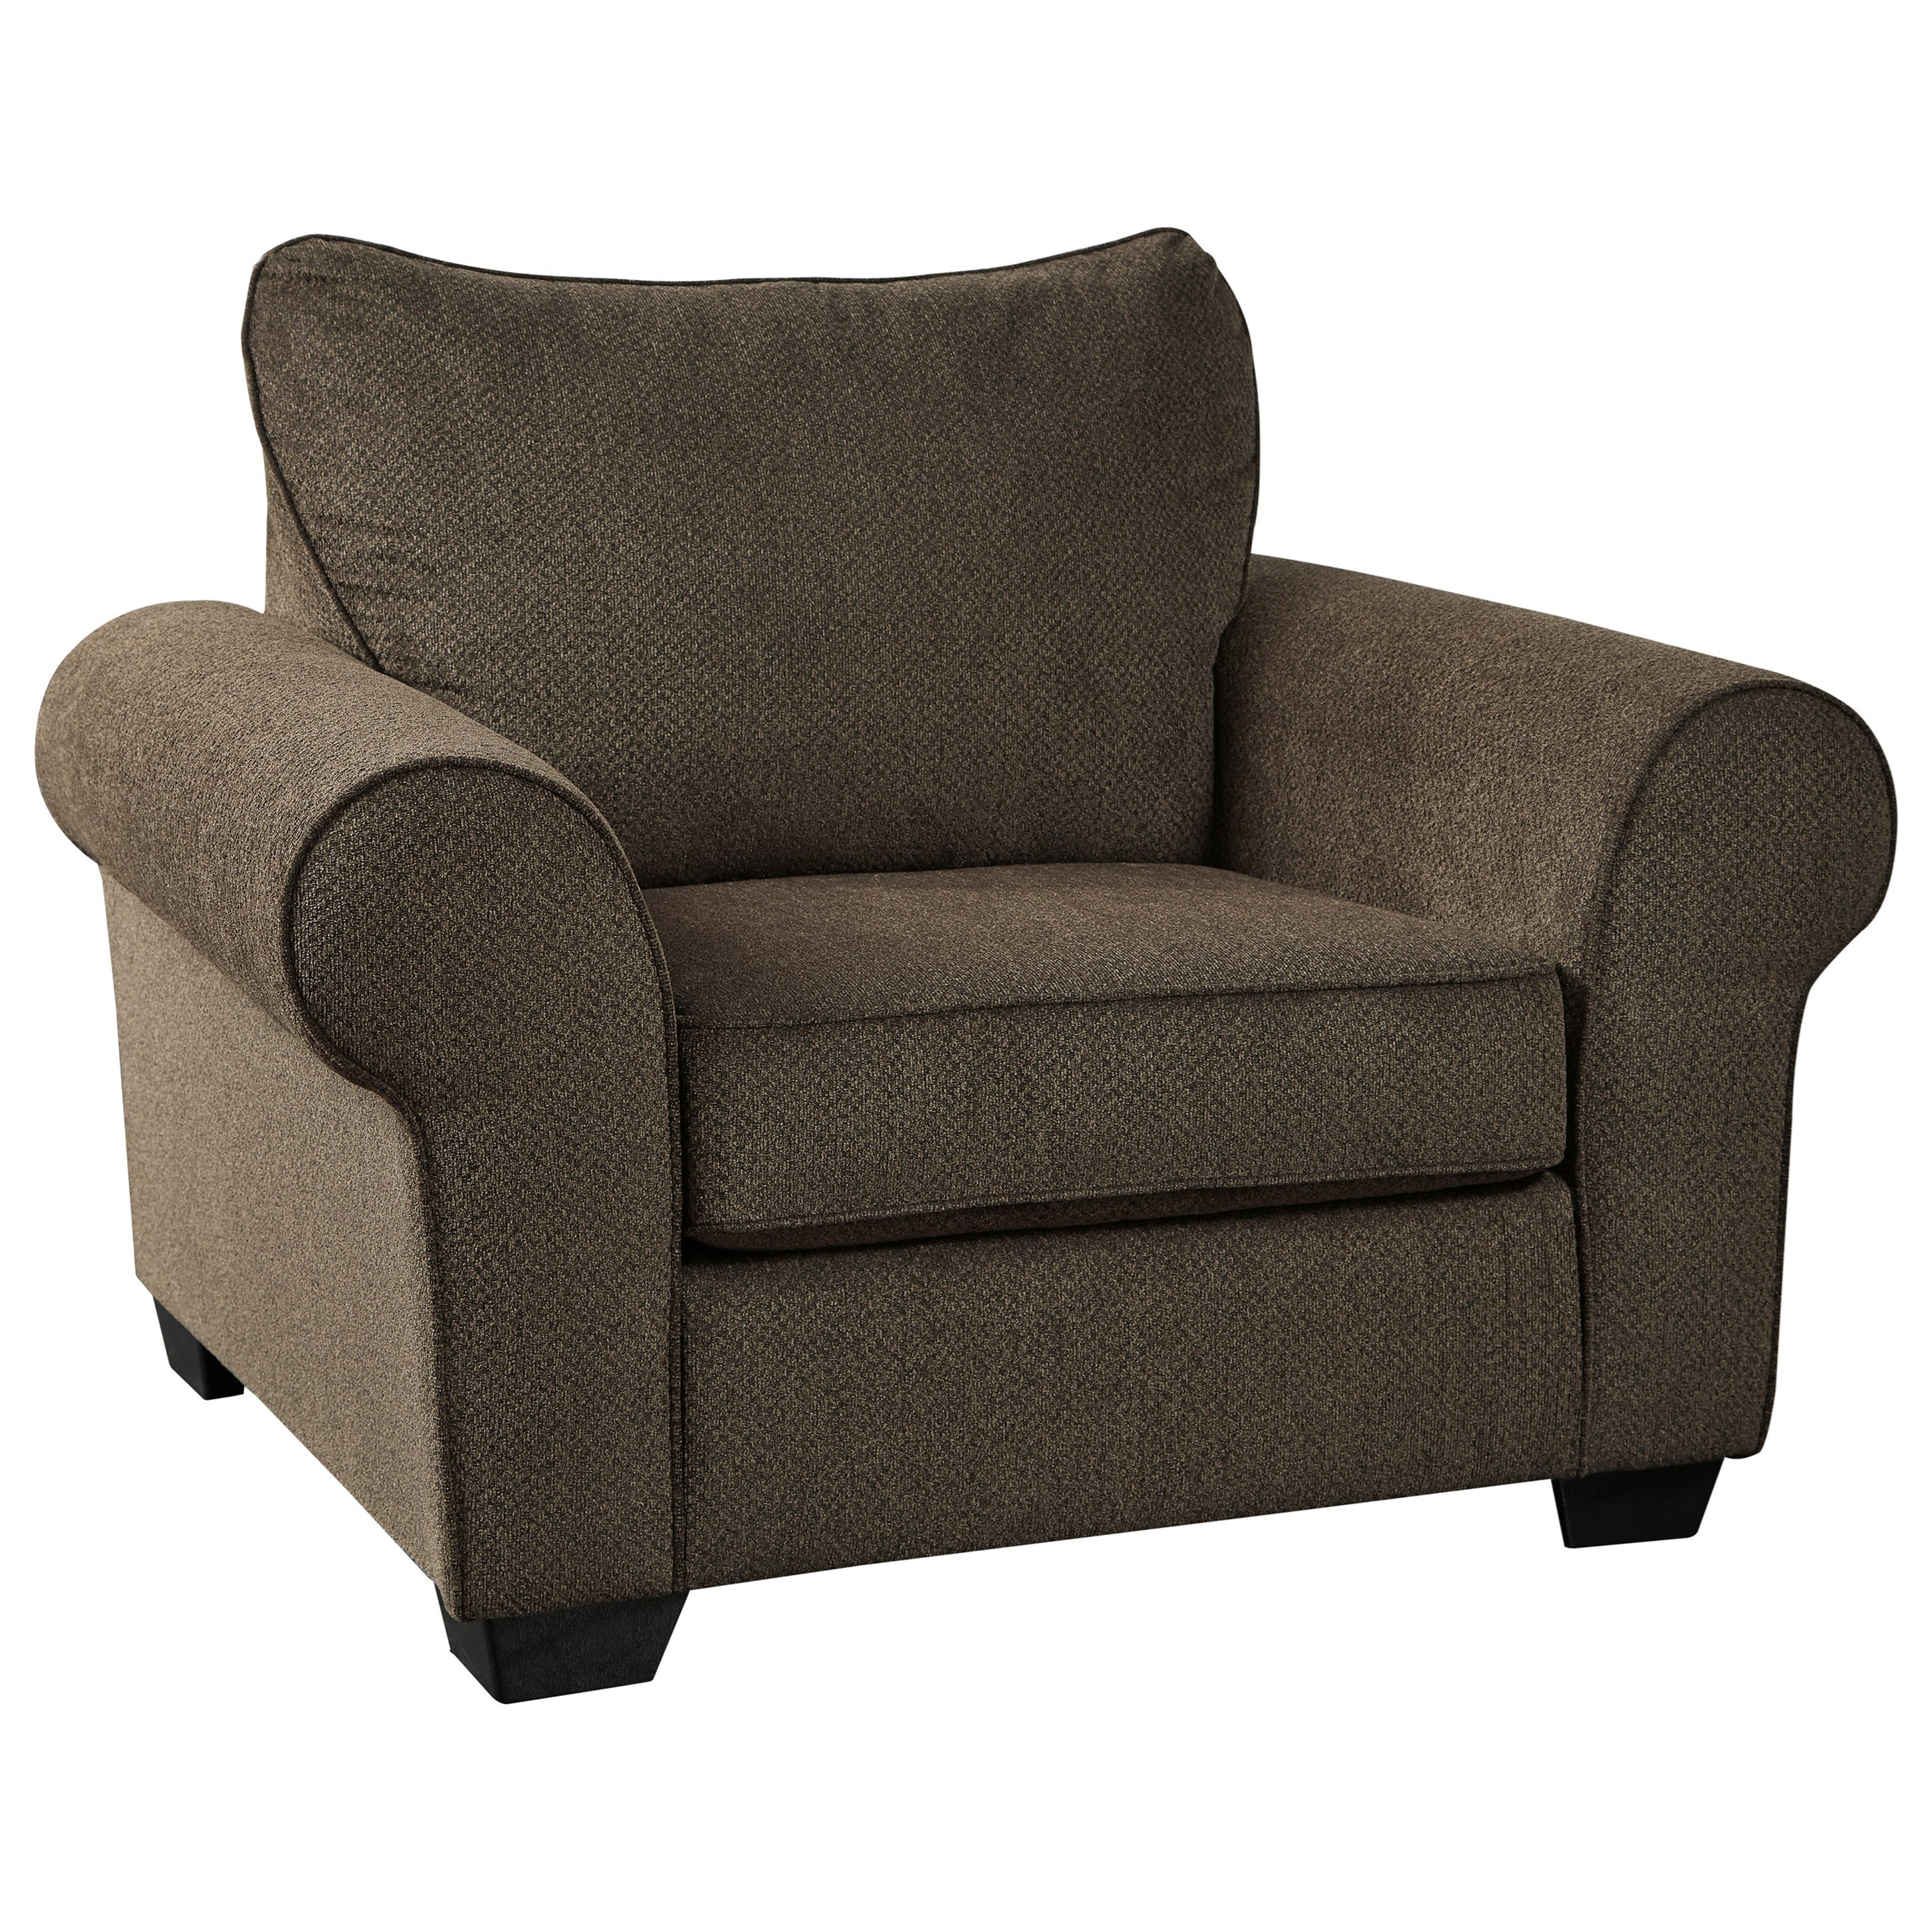 Chair & a Half with Rolled Arms